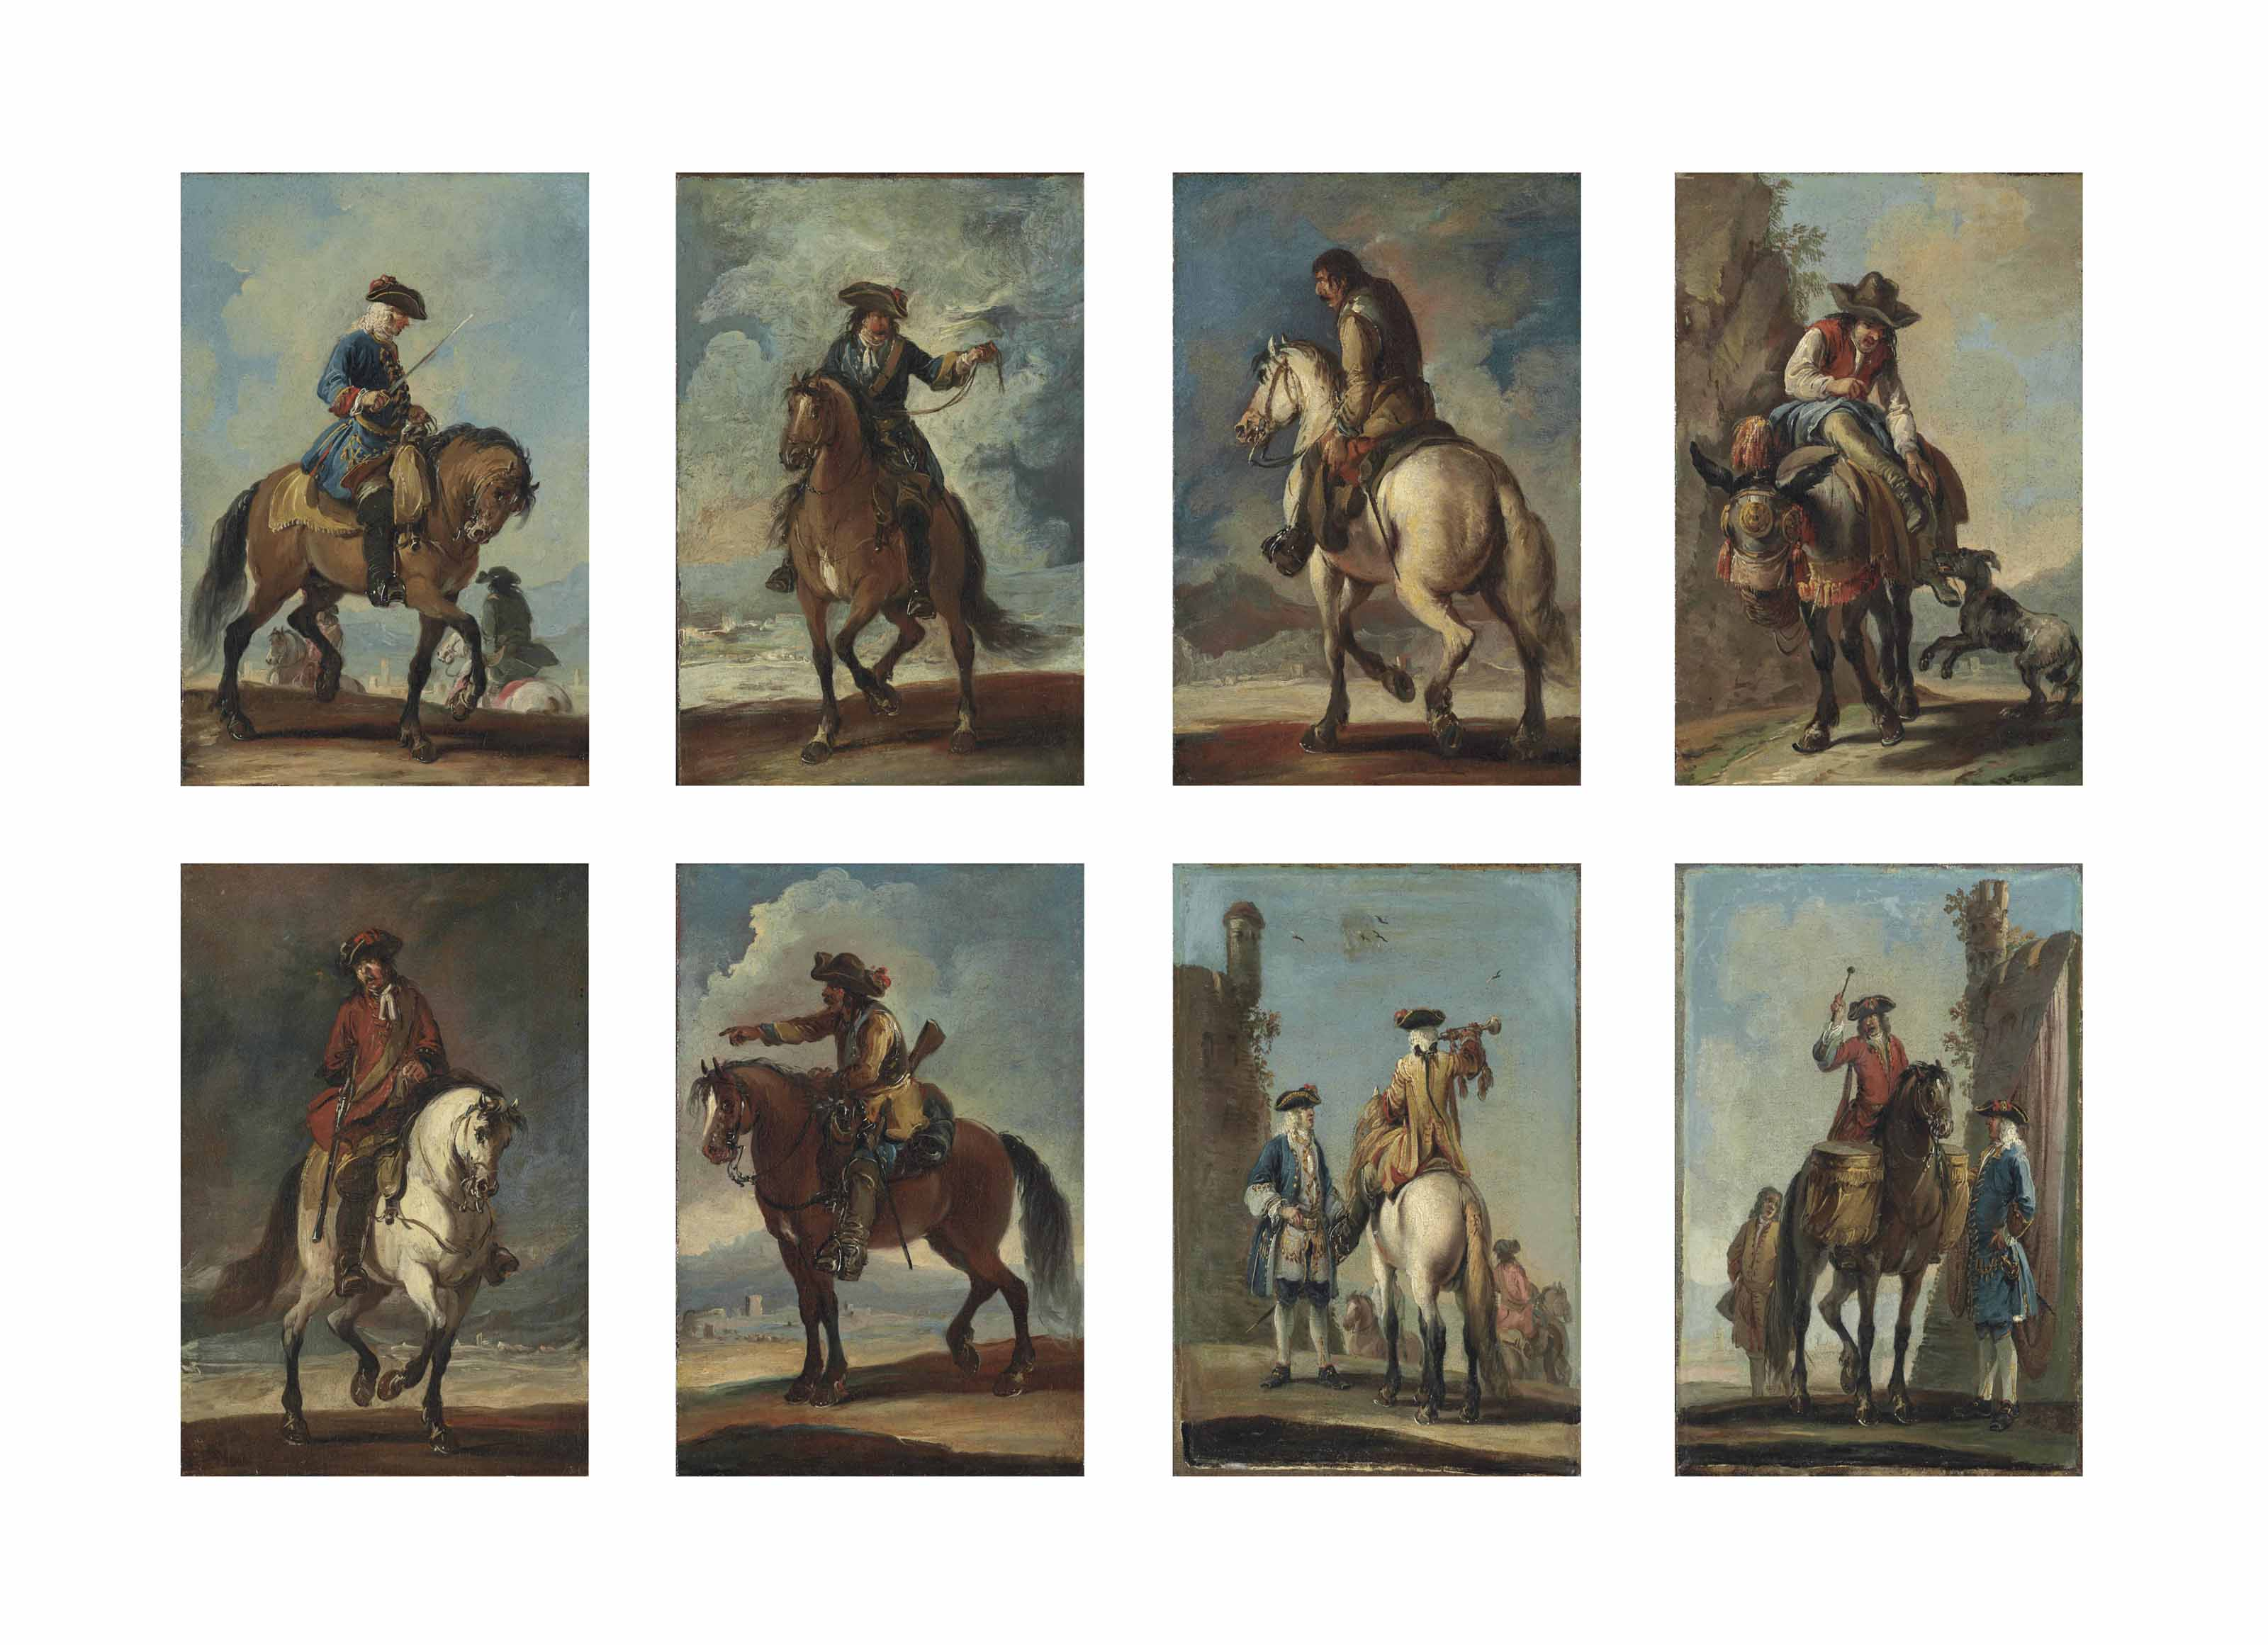 A set of eight individual military figures on horseback, one on a mule; two being attended by other figures, before ruins